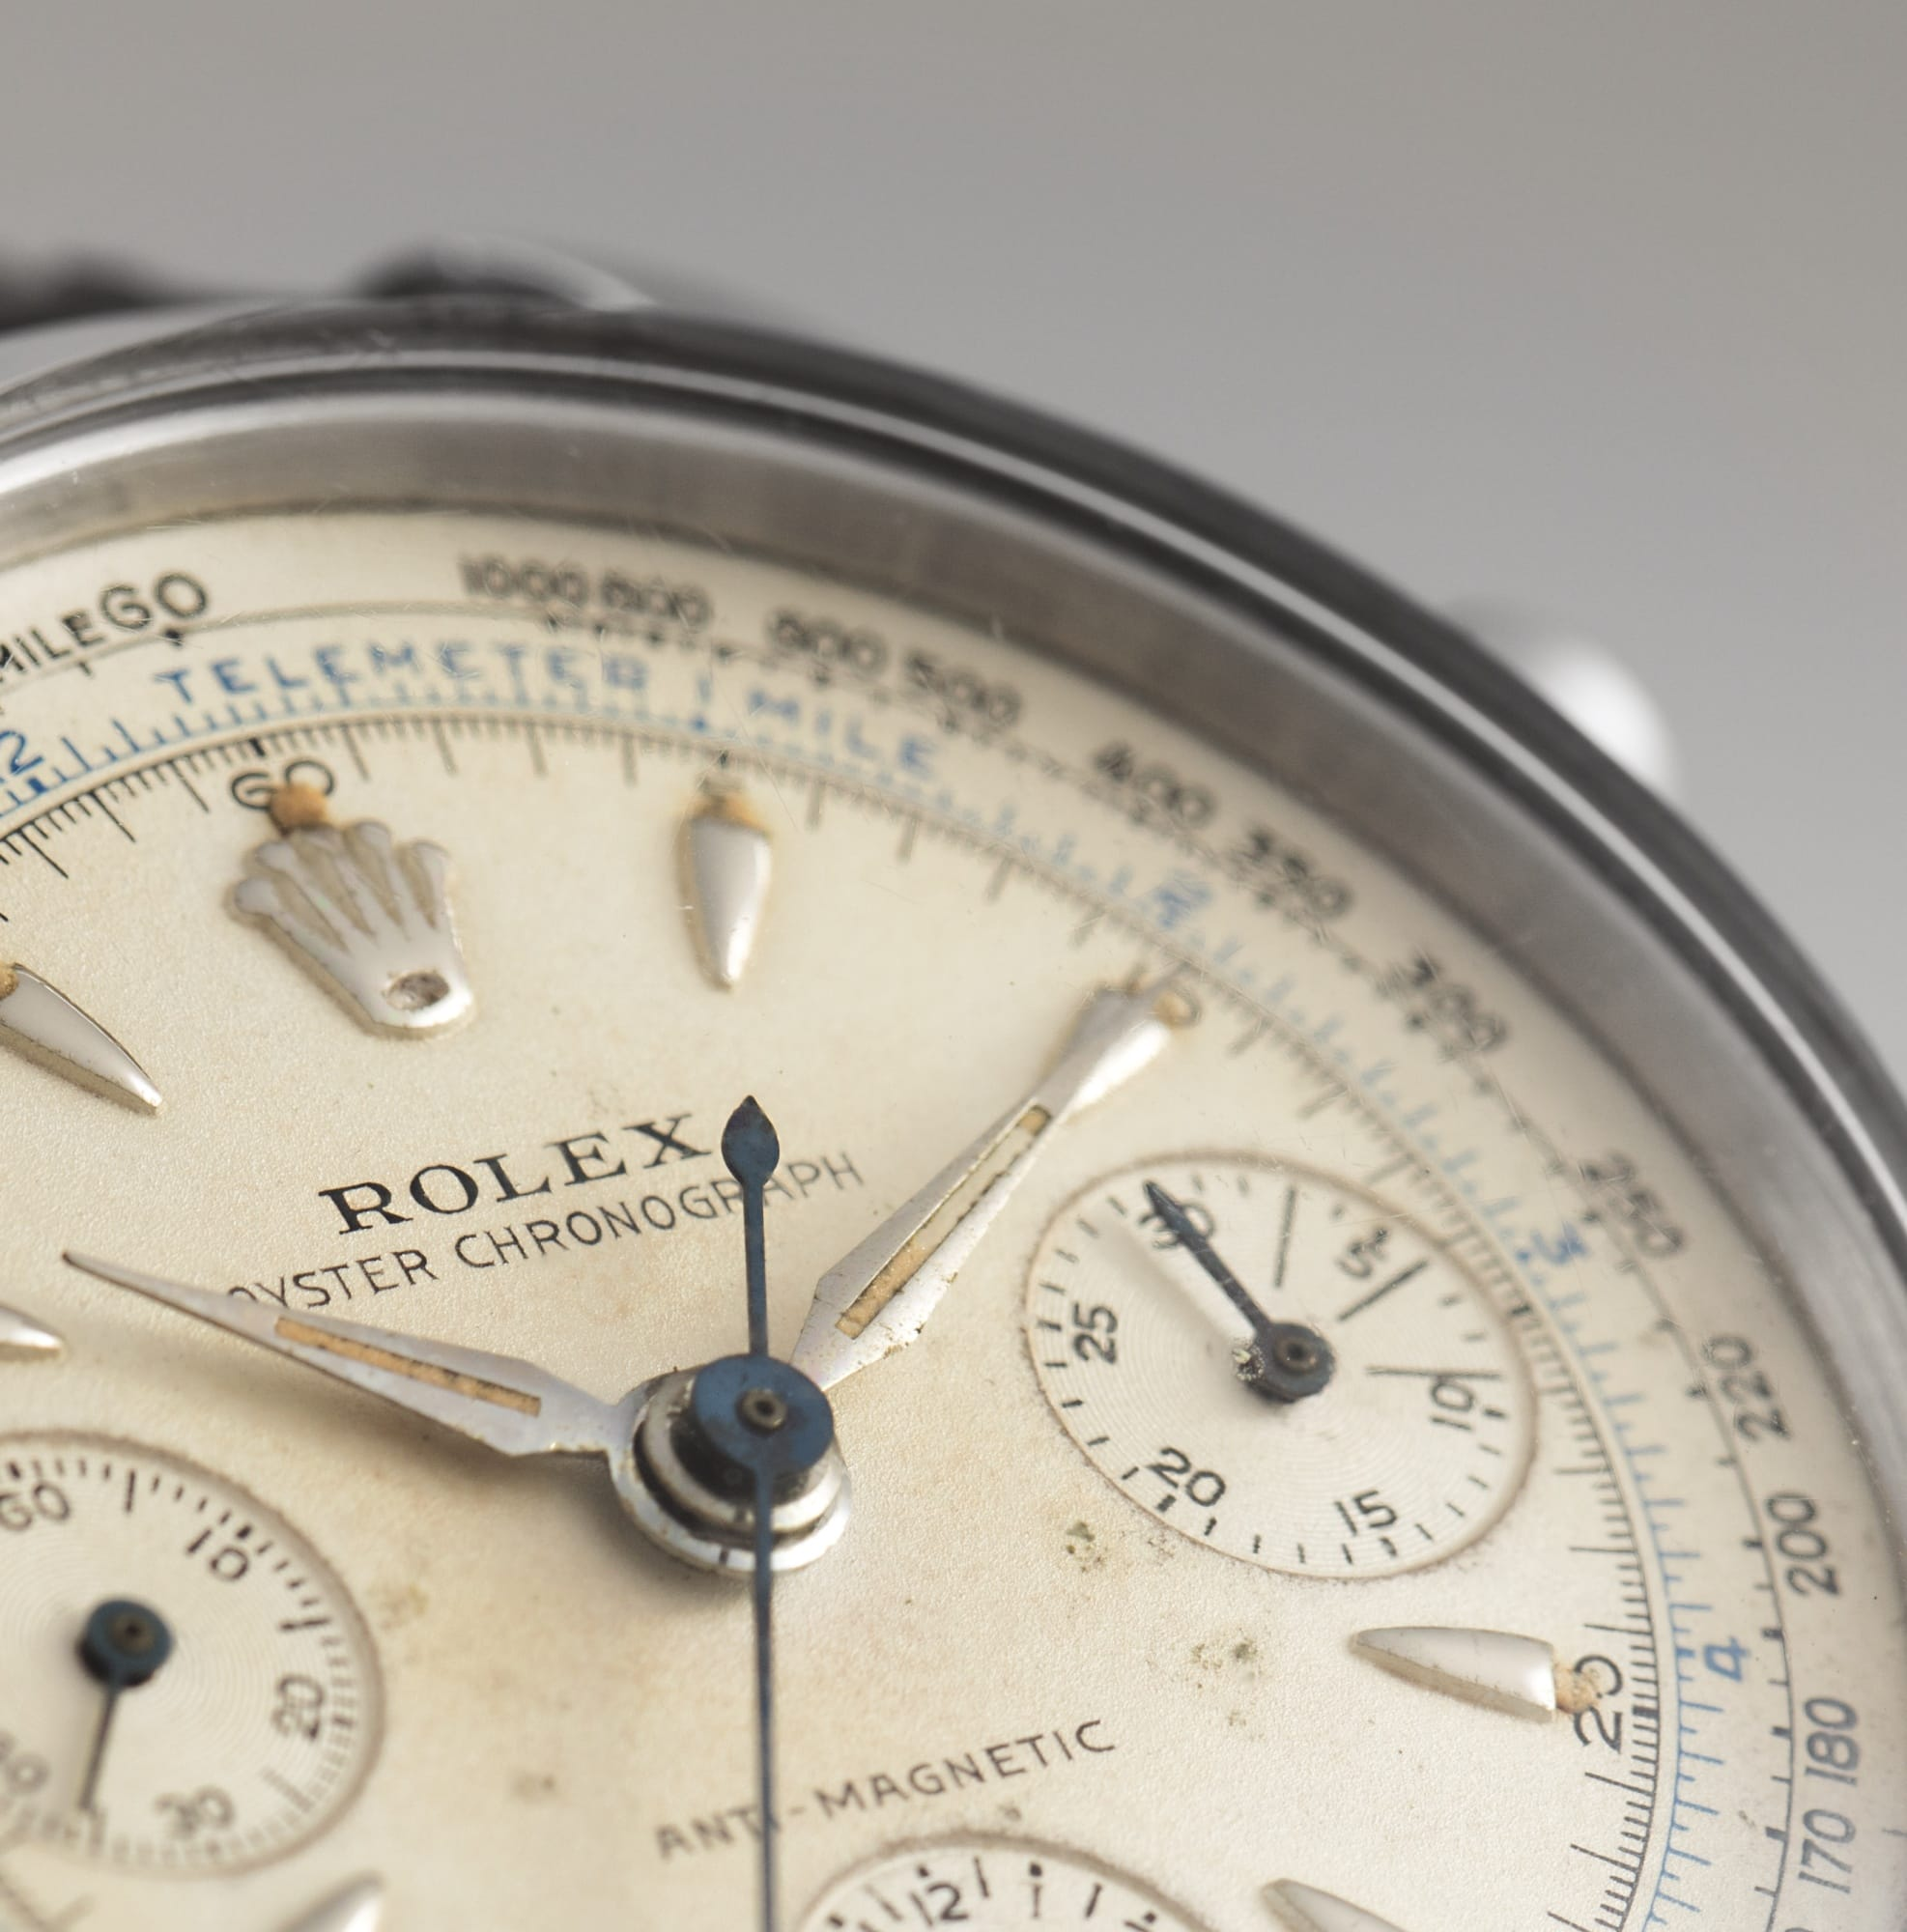 The Rolex Cosmograph History has many changes.